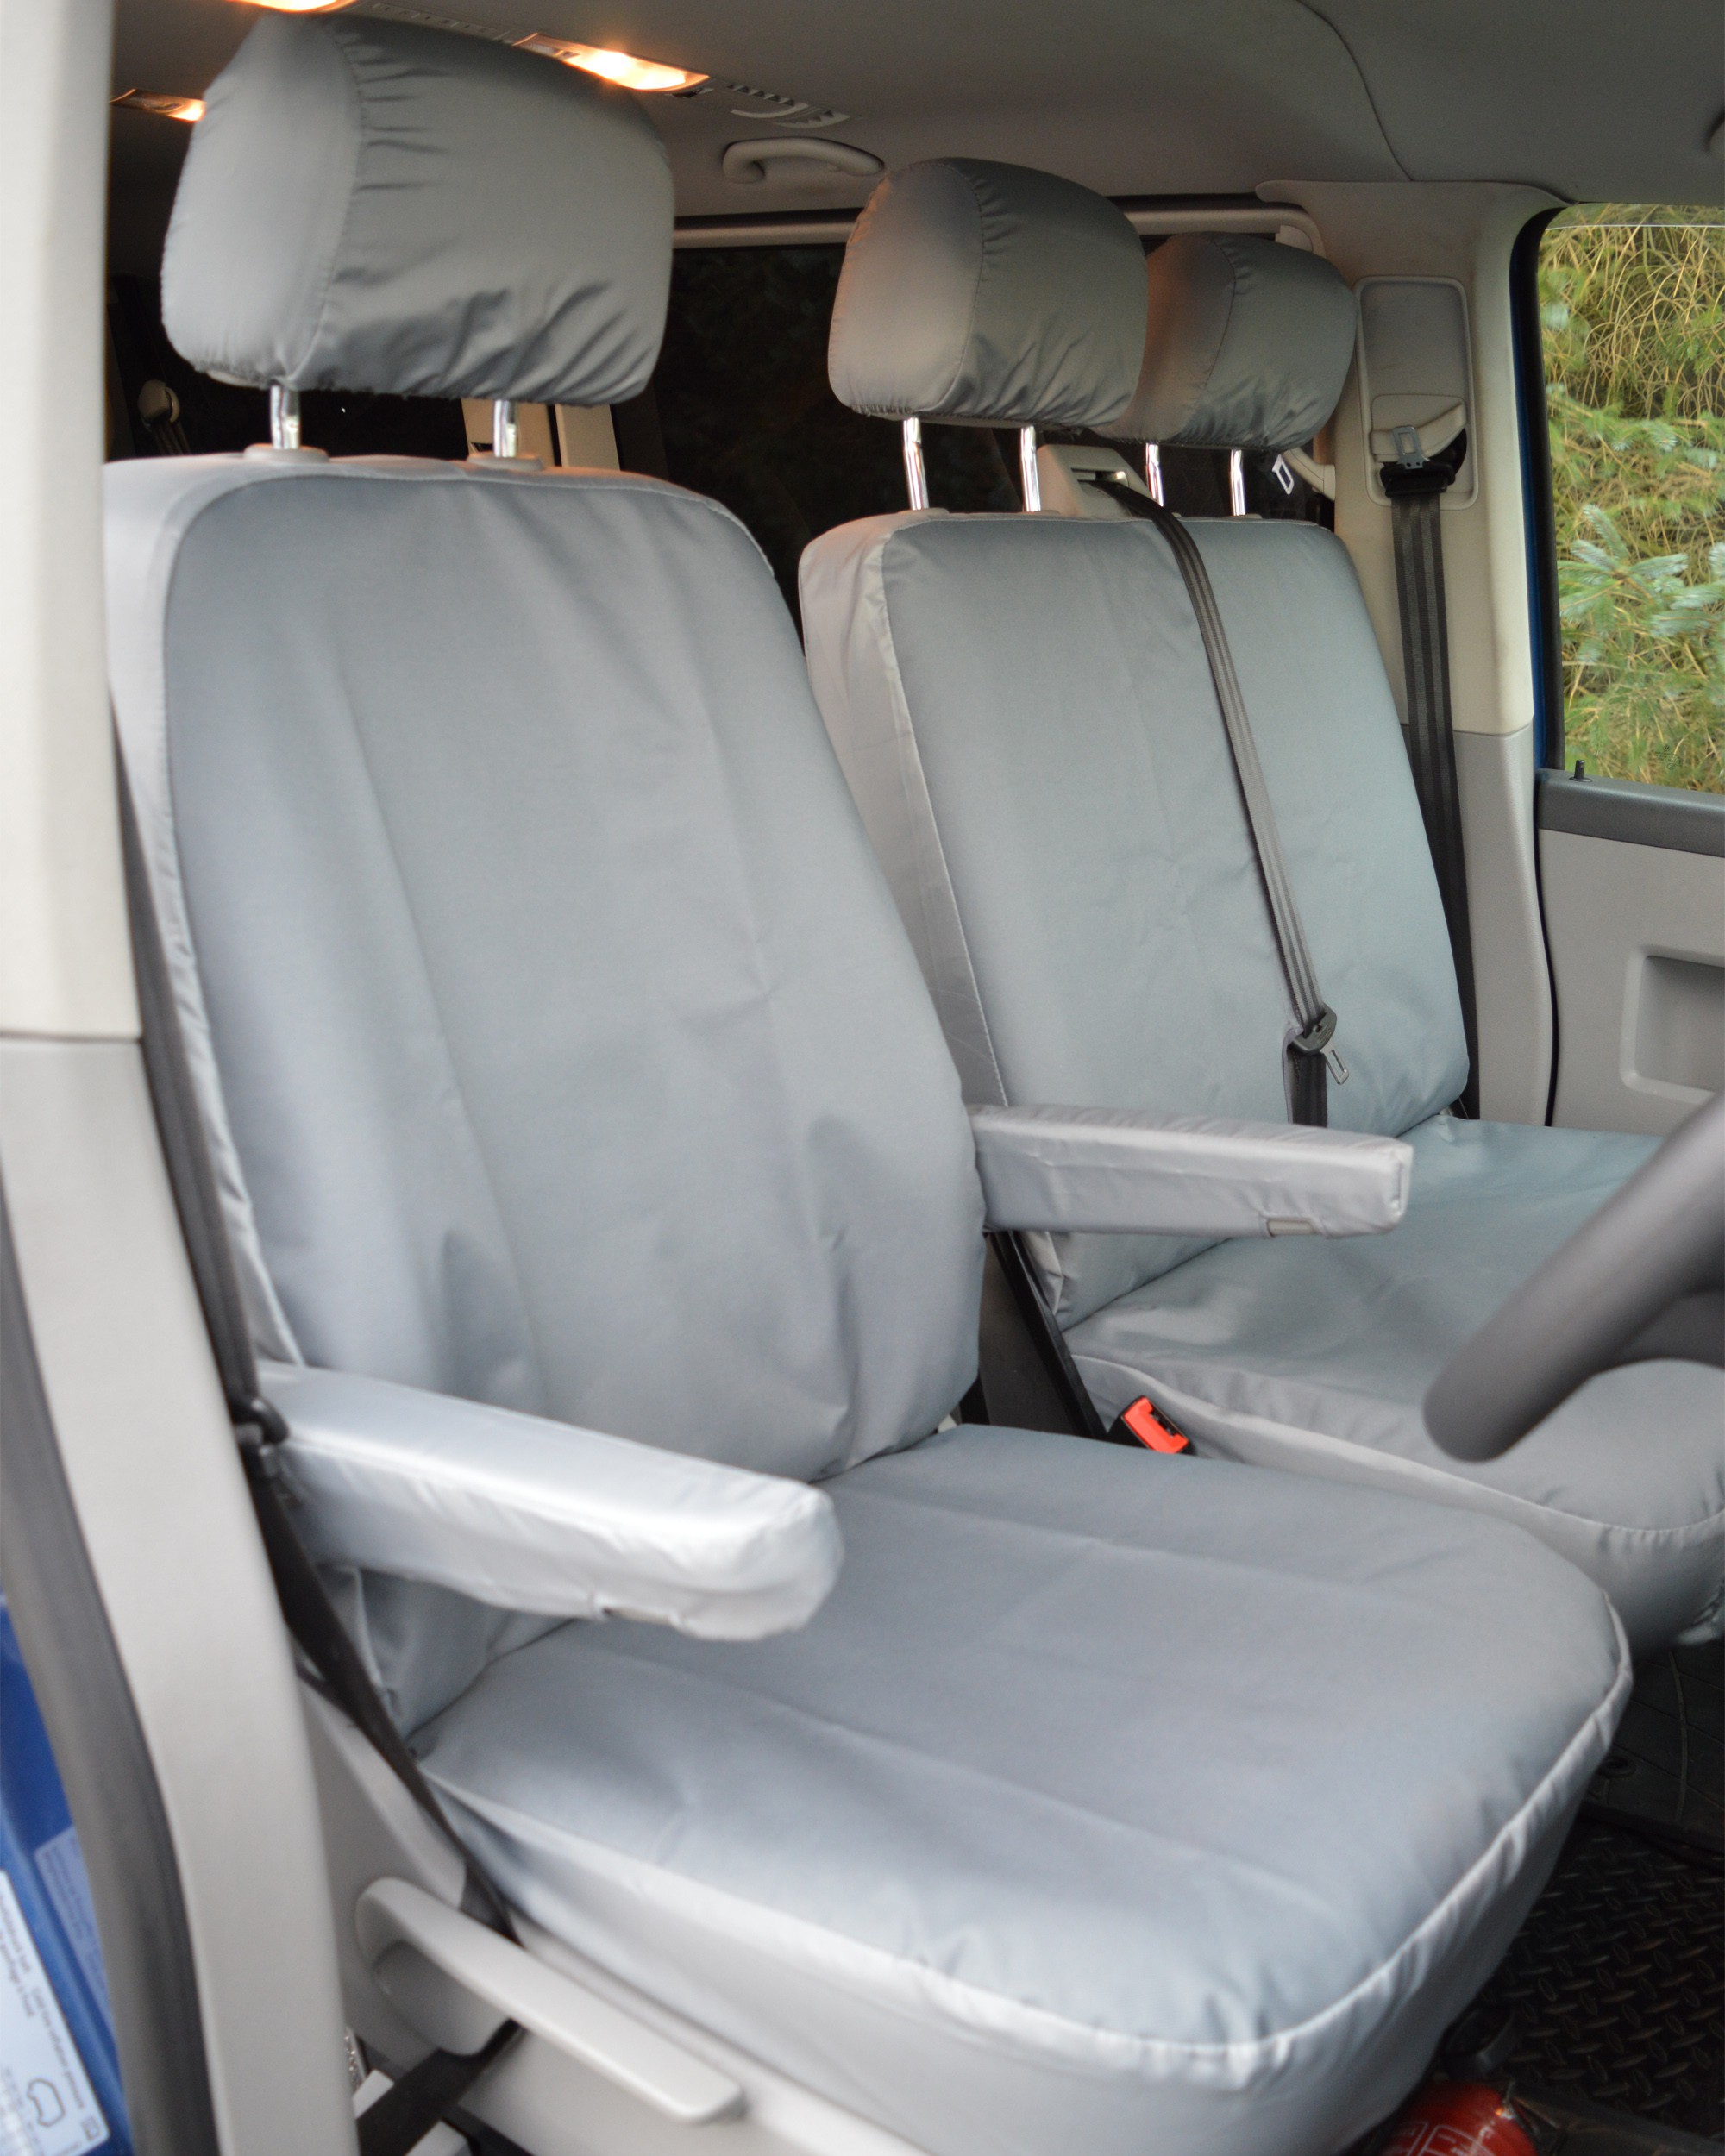 Volkswagen Transporter -  Grey Heavy Duty Seat Covers - Drivers Seat